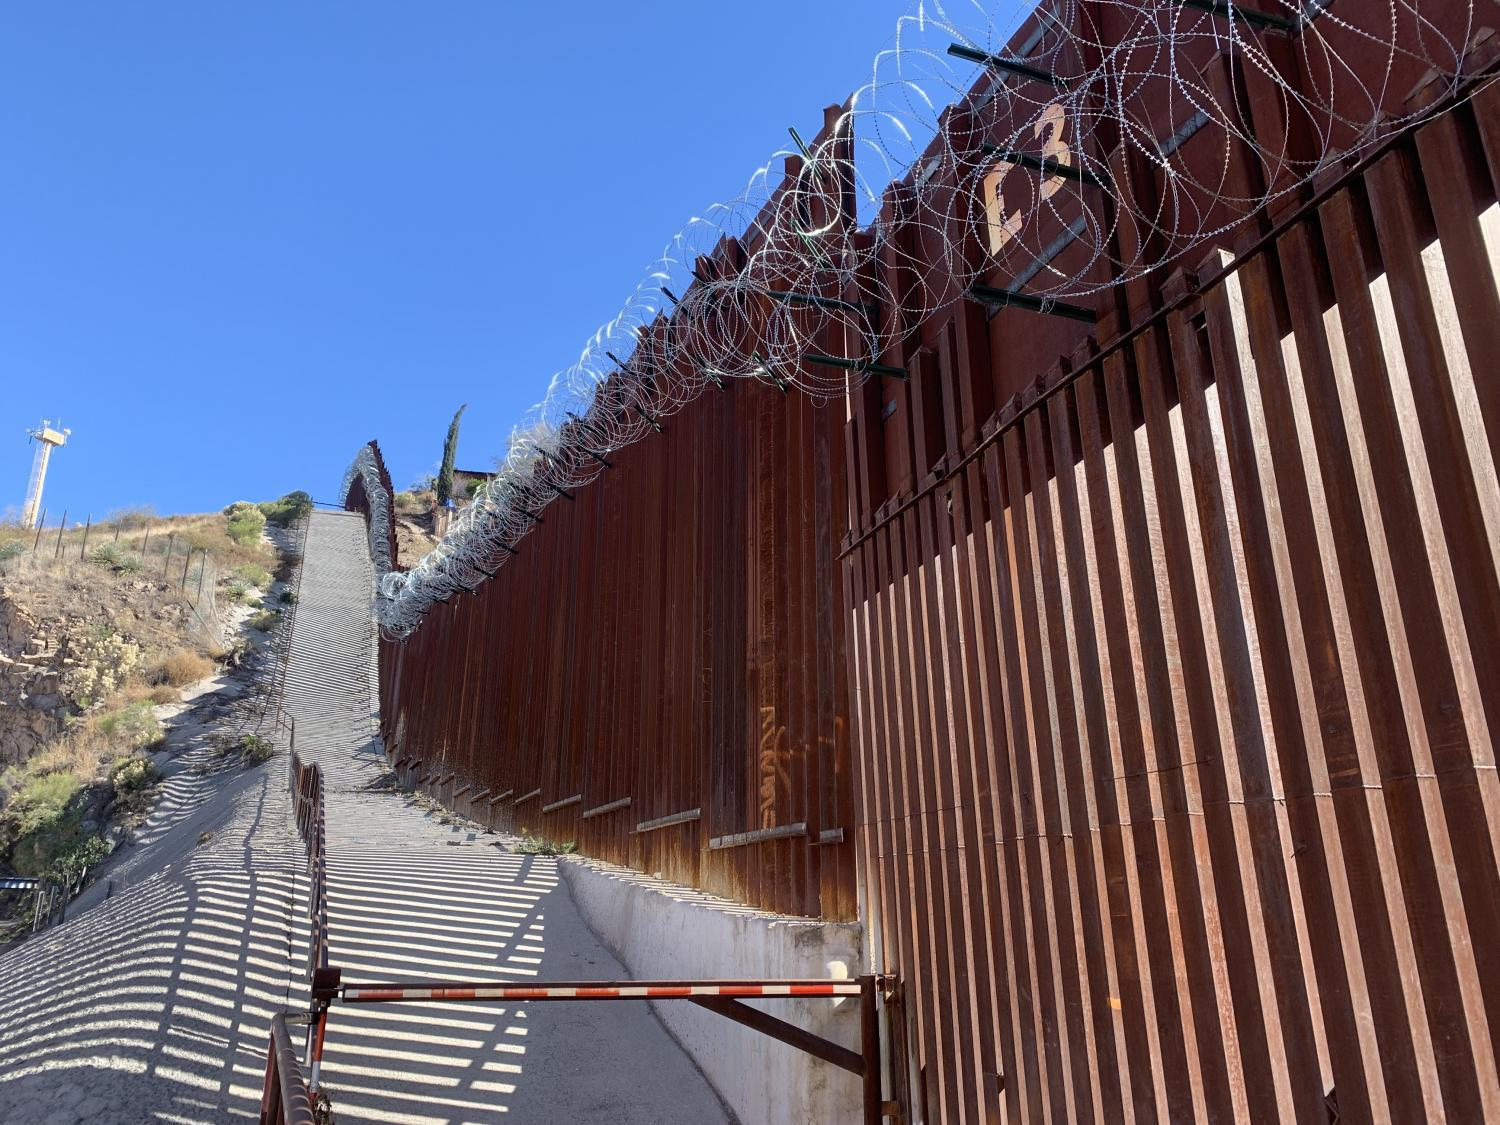 Border in Nogales